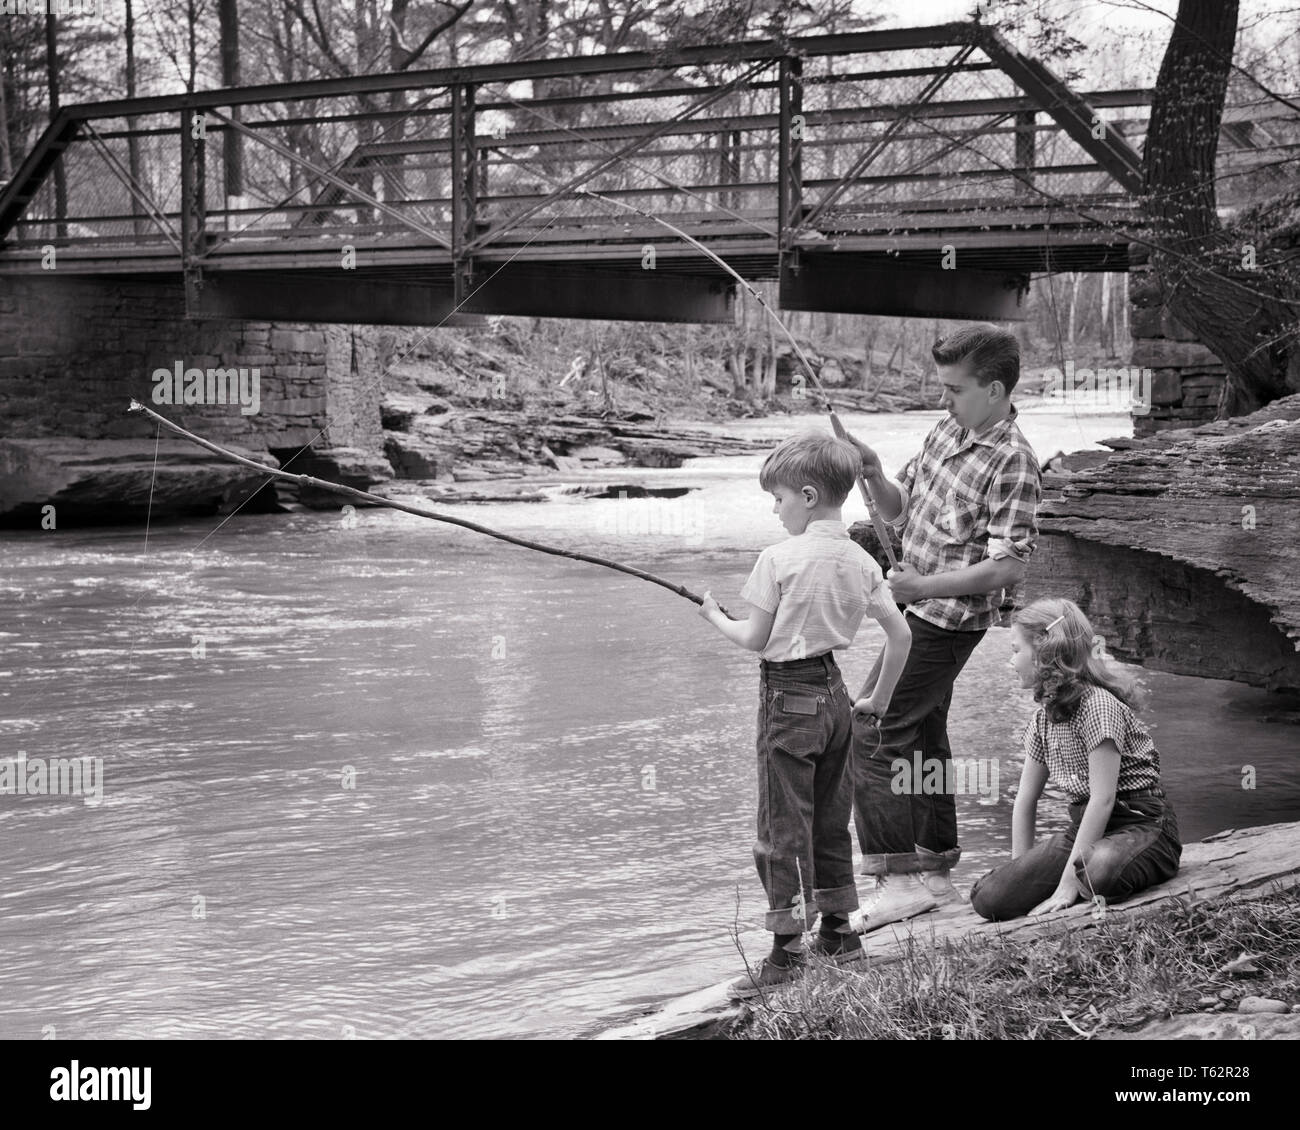 1950s YOUNG GIRL SITTING BESIDE CREEK BY ROAD BRIDGE WATCHING TWO BOYS FISHING IN RUSHING WATER USING LONG WOOD POLES AND STRING - a878 DEB001 HARS 1 JUVENILE BALANCE SAFETY ATHLETE LIFESTYLE FEMALES BROTHERS RURAL COPY SPACE FRIENDSHIP FULL-LENGTH STREAM MALES RISK ATHLETIC SIBLINGS CONFIDENCE SISTERS B&W POLES ADVENTURE RUSHING AND EXCITEMENT RECREATION BY IN SIBLING USING CONCEPTUAL BESIDE STICKS STYLISH DEB001 JUVENILES RELAXATION RODS TOGETHERNESS BLACK AND WHITE CAUCASIAN ETHNICITY CREEK OLD FASHIONED - Stock Image